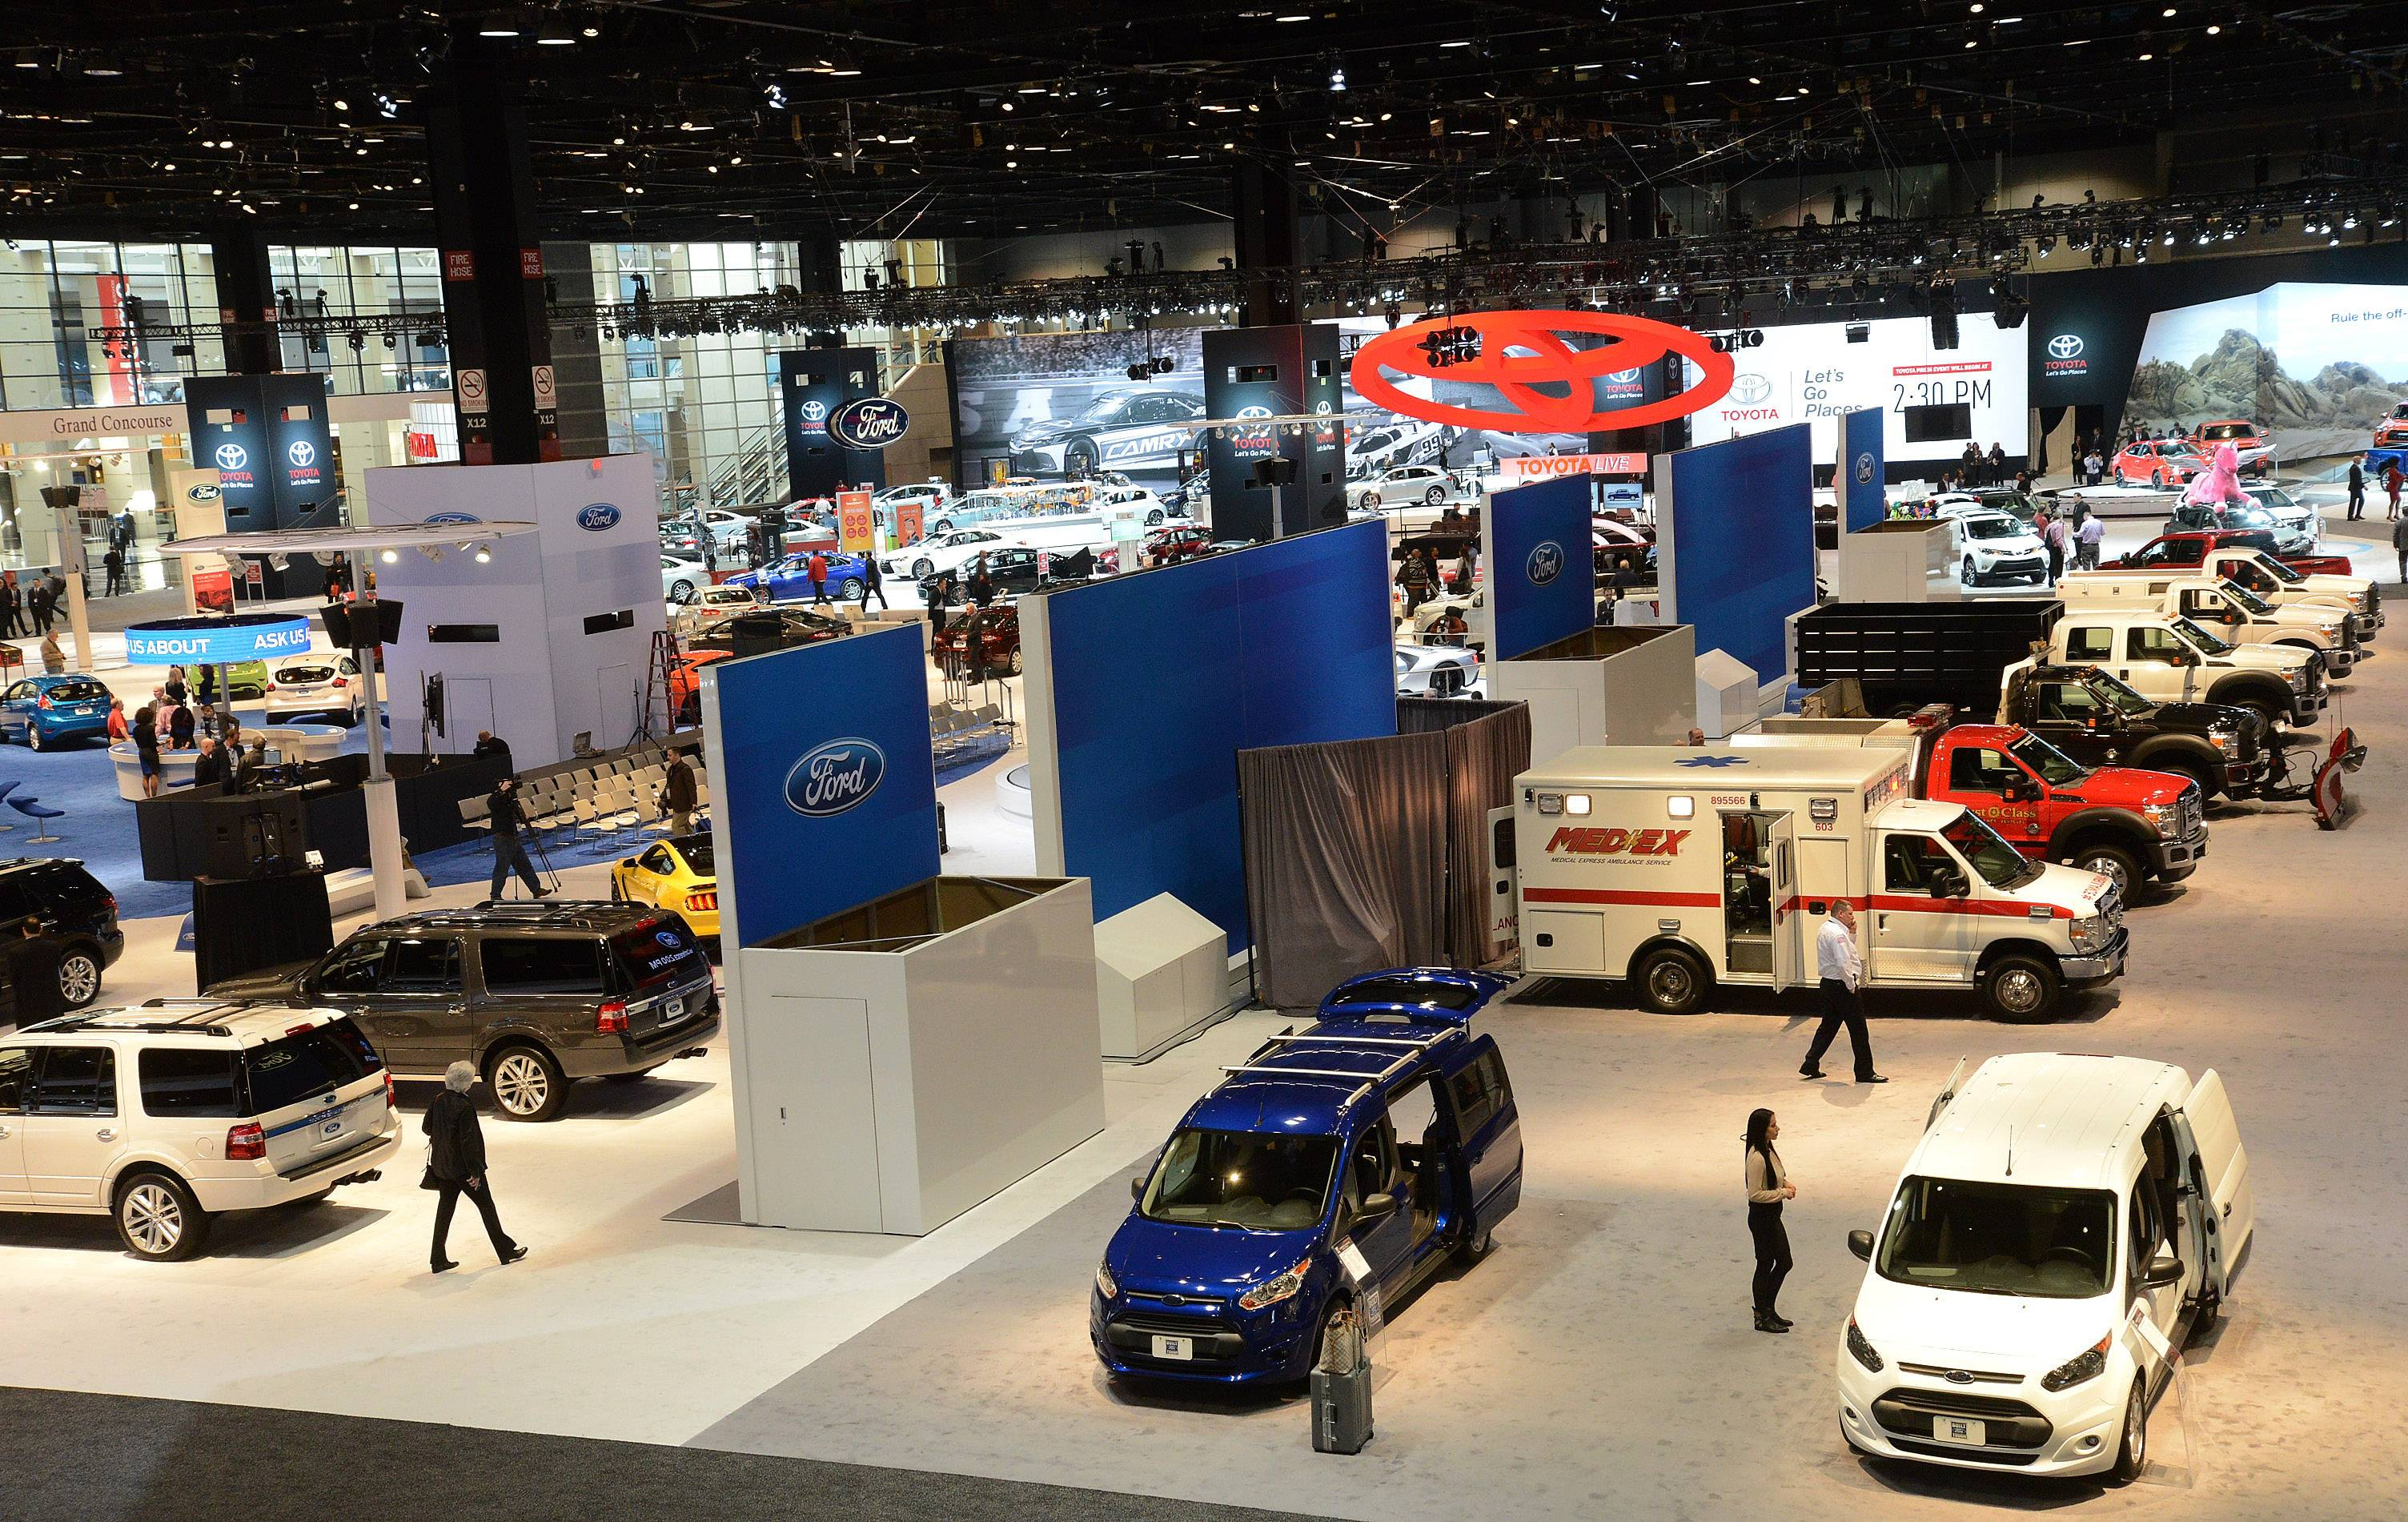 Fuel-efficient, sporty, sophisticated: Auto show offers lots of options